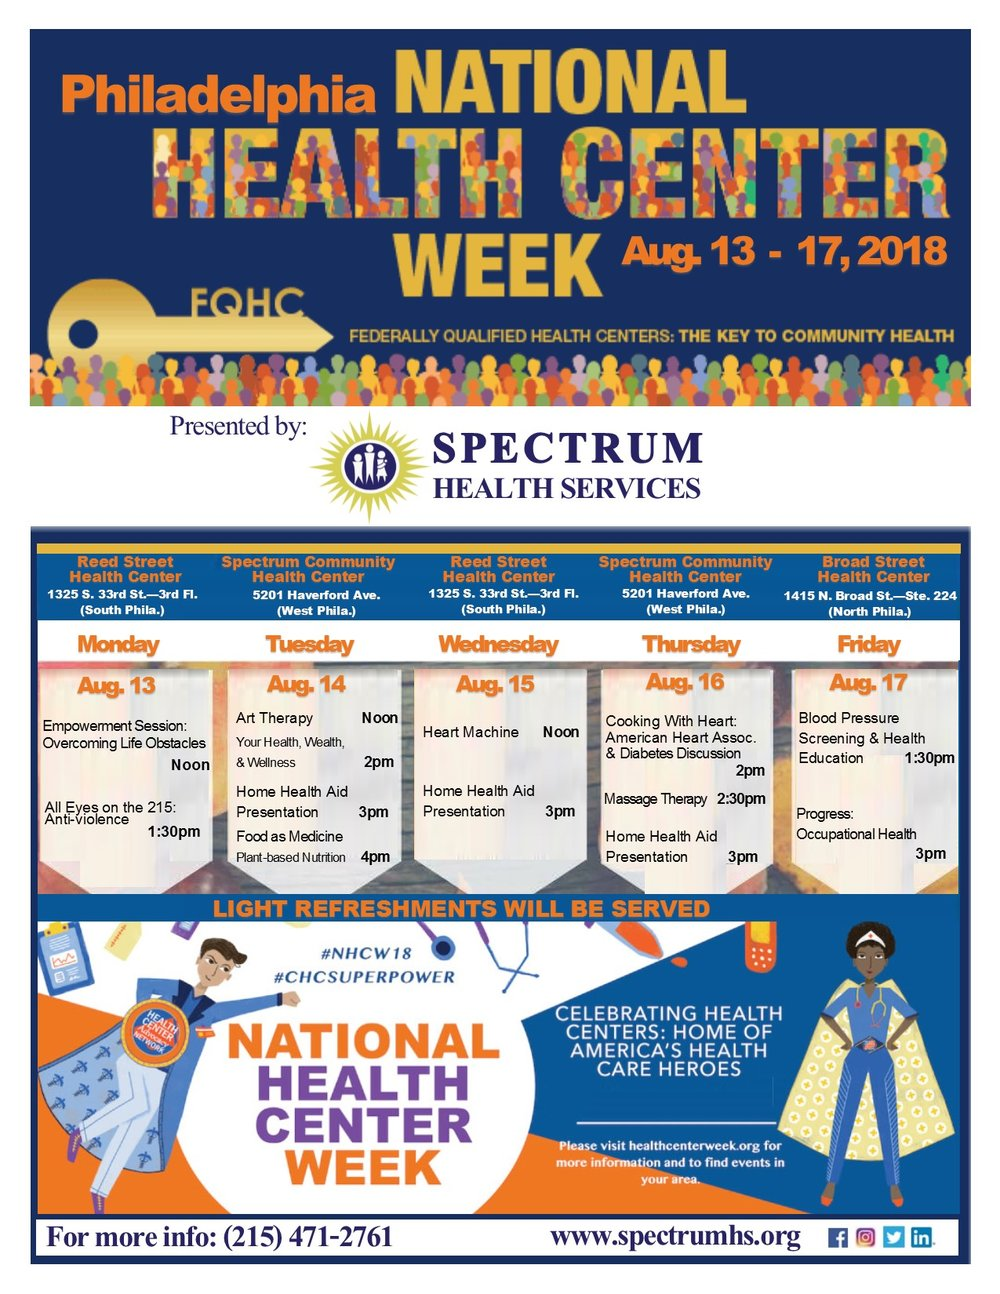 NATIONAL HEALTH CENTER WEEK 2018.jpg